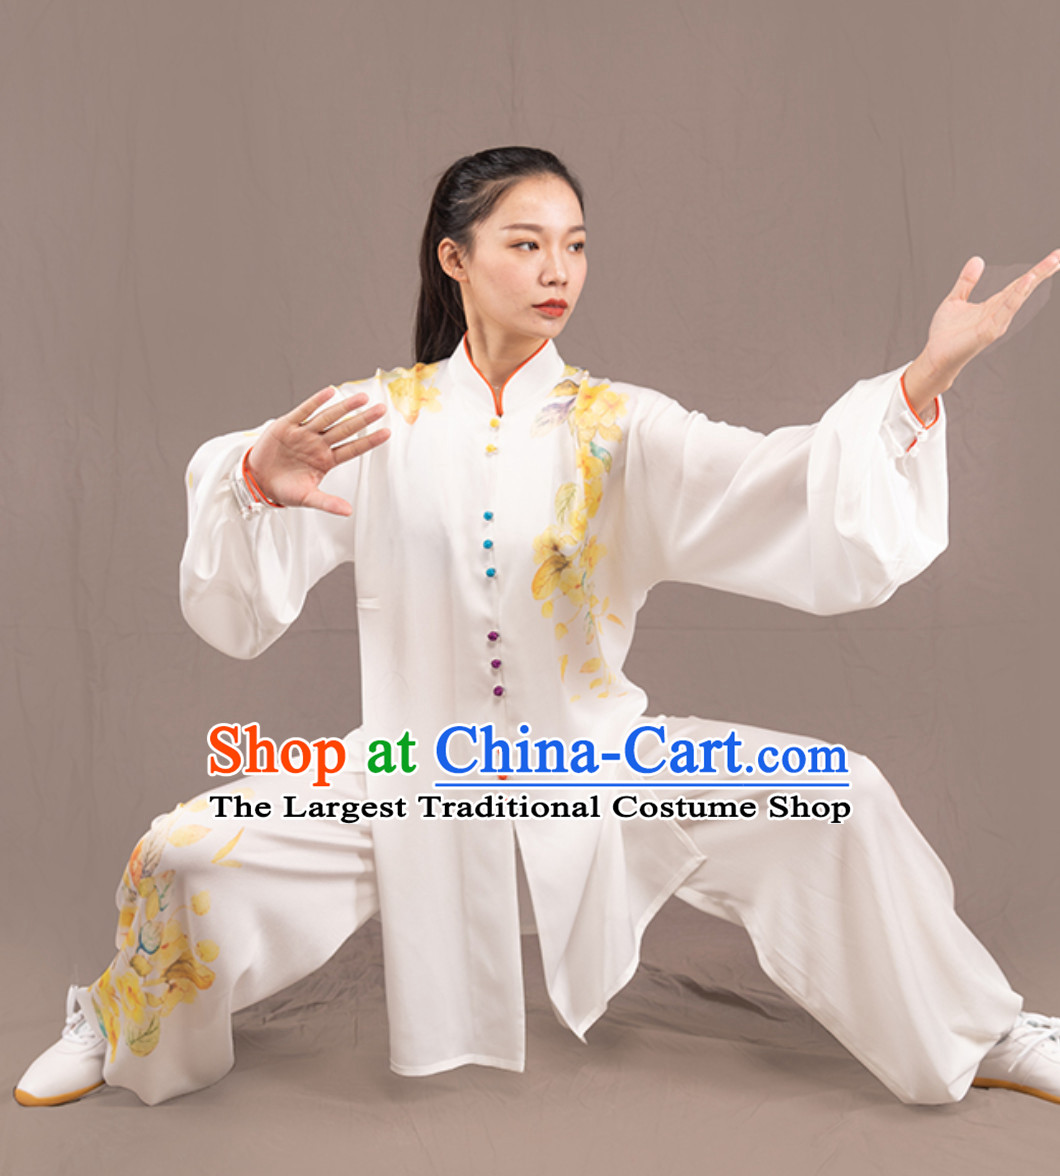 Top Chinese Traditional Competition Championship Professional Tai Chi Uniforms Taiji Kung Fu Wing Chun Kungfu Tai Ji Sword Gong Fu Master Stage Suits Clothes Complete Set